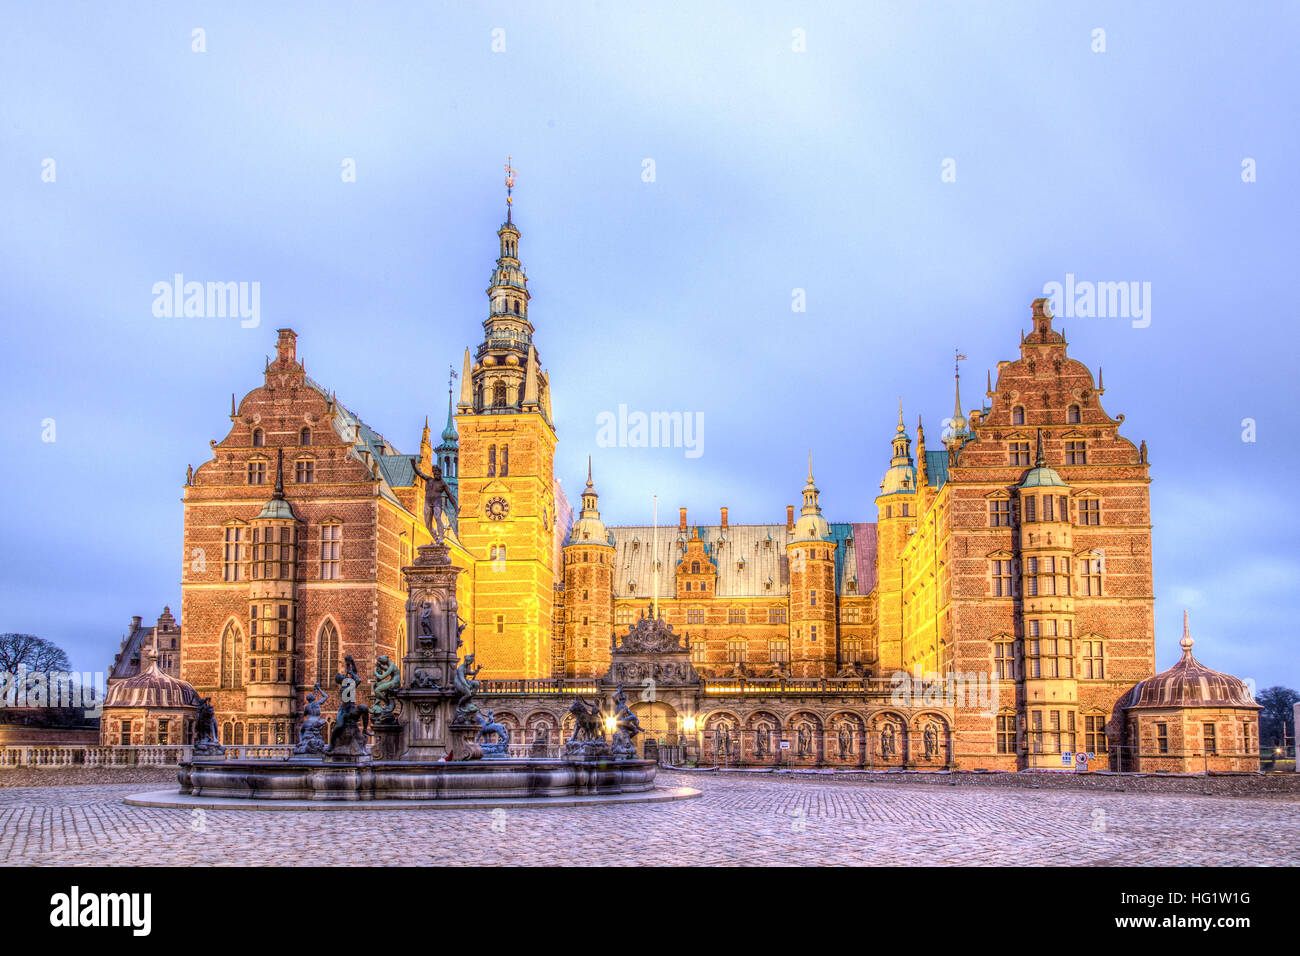 Hillerod, Denmark - December 29, 2016: View of the illuminated Frederiksborg Palace - Stock Image